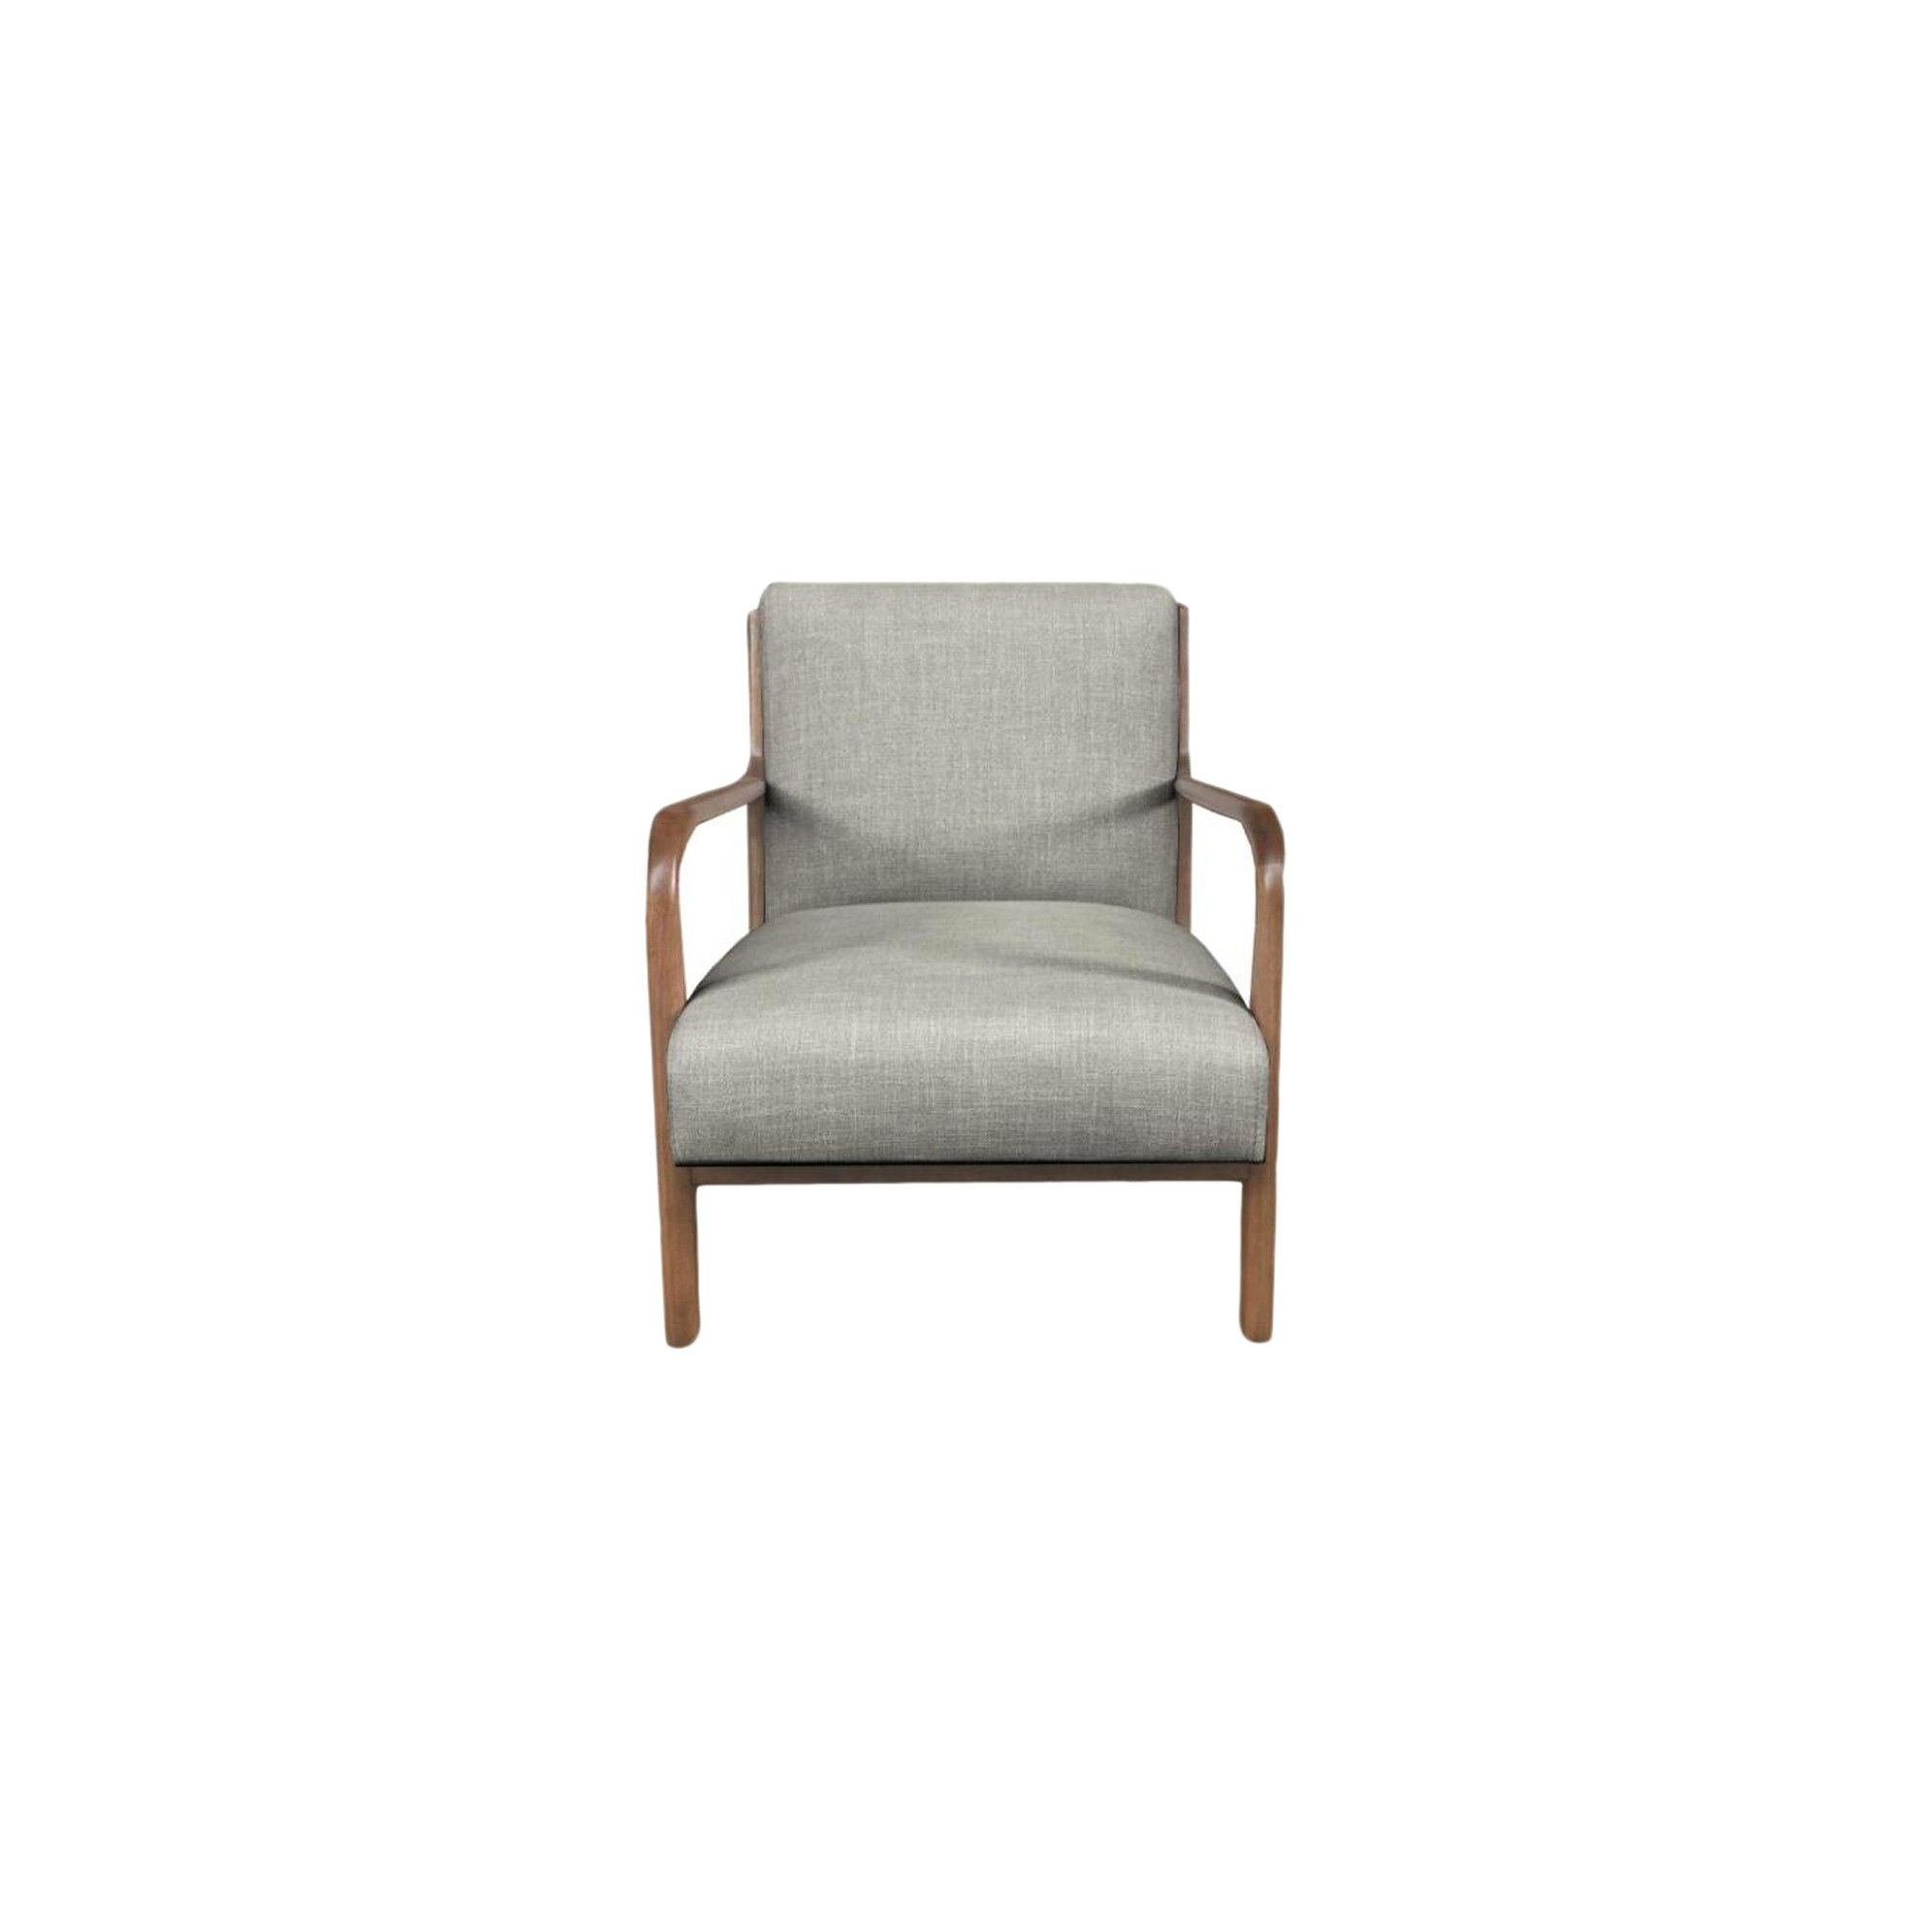 Sensational Esters Wood Arm Chair Light Gray Project 62 Products Bralicious Painted Fabric Chair Ideas Braliciousco